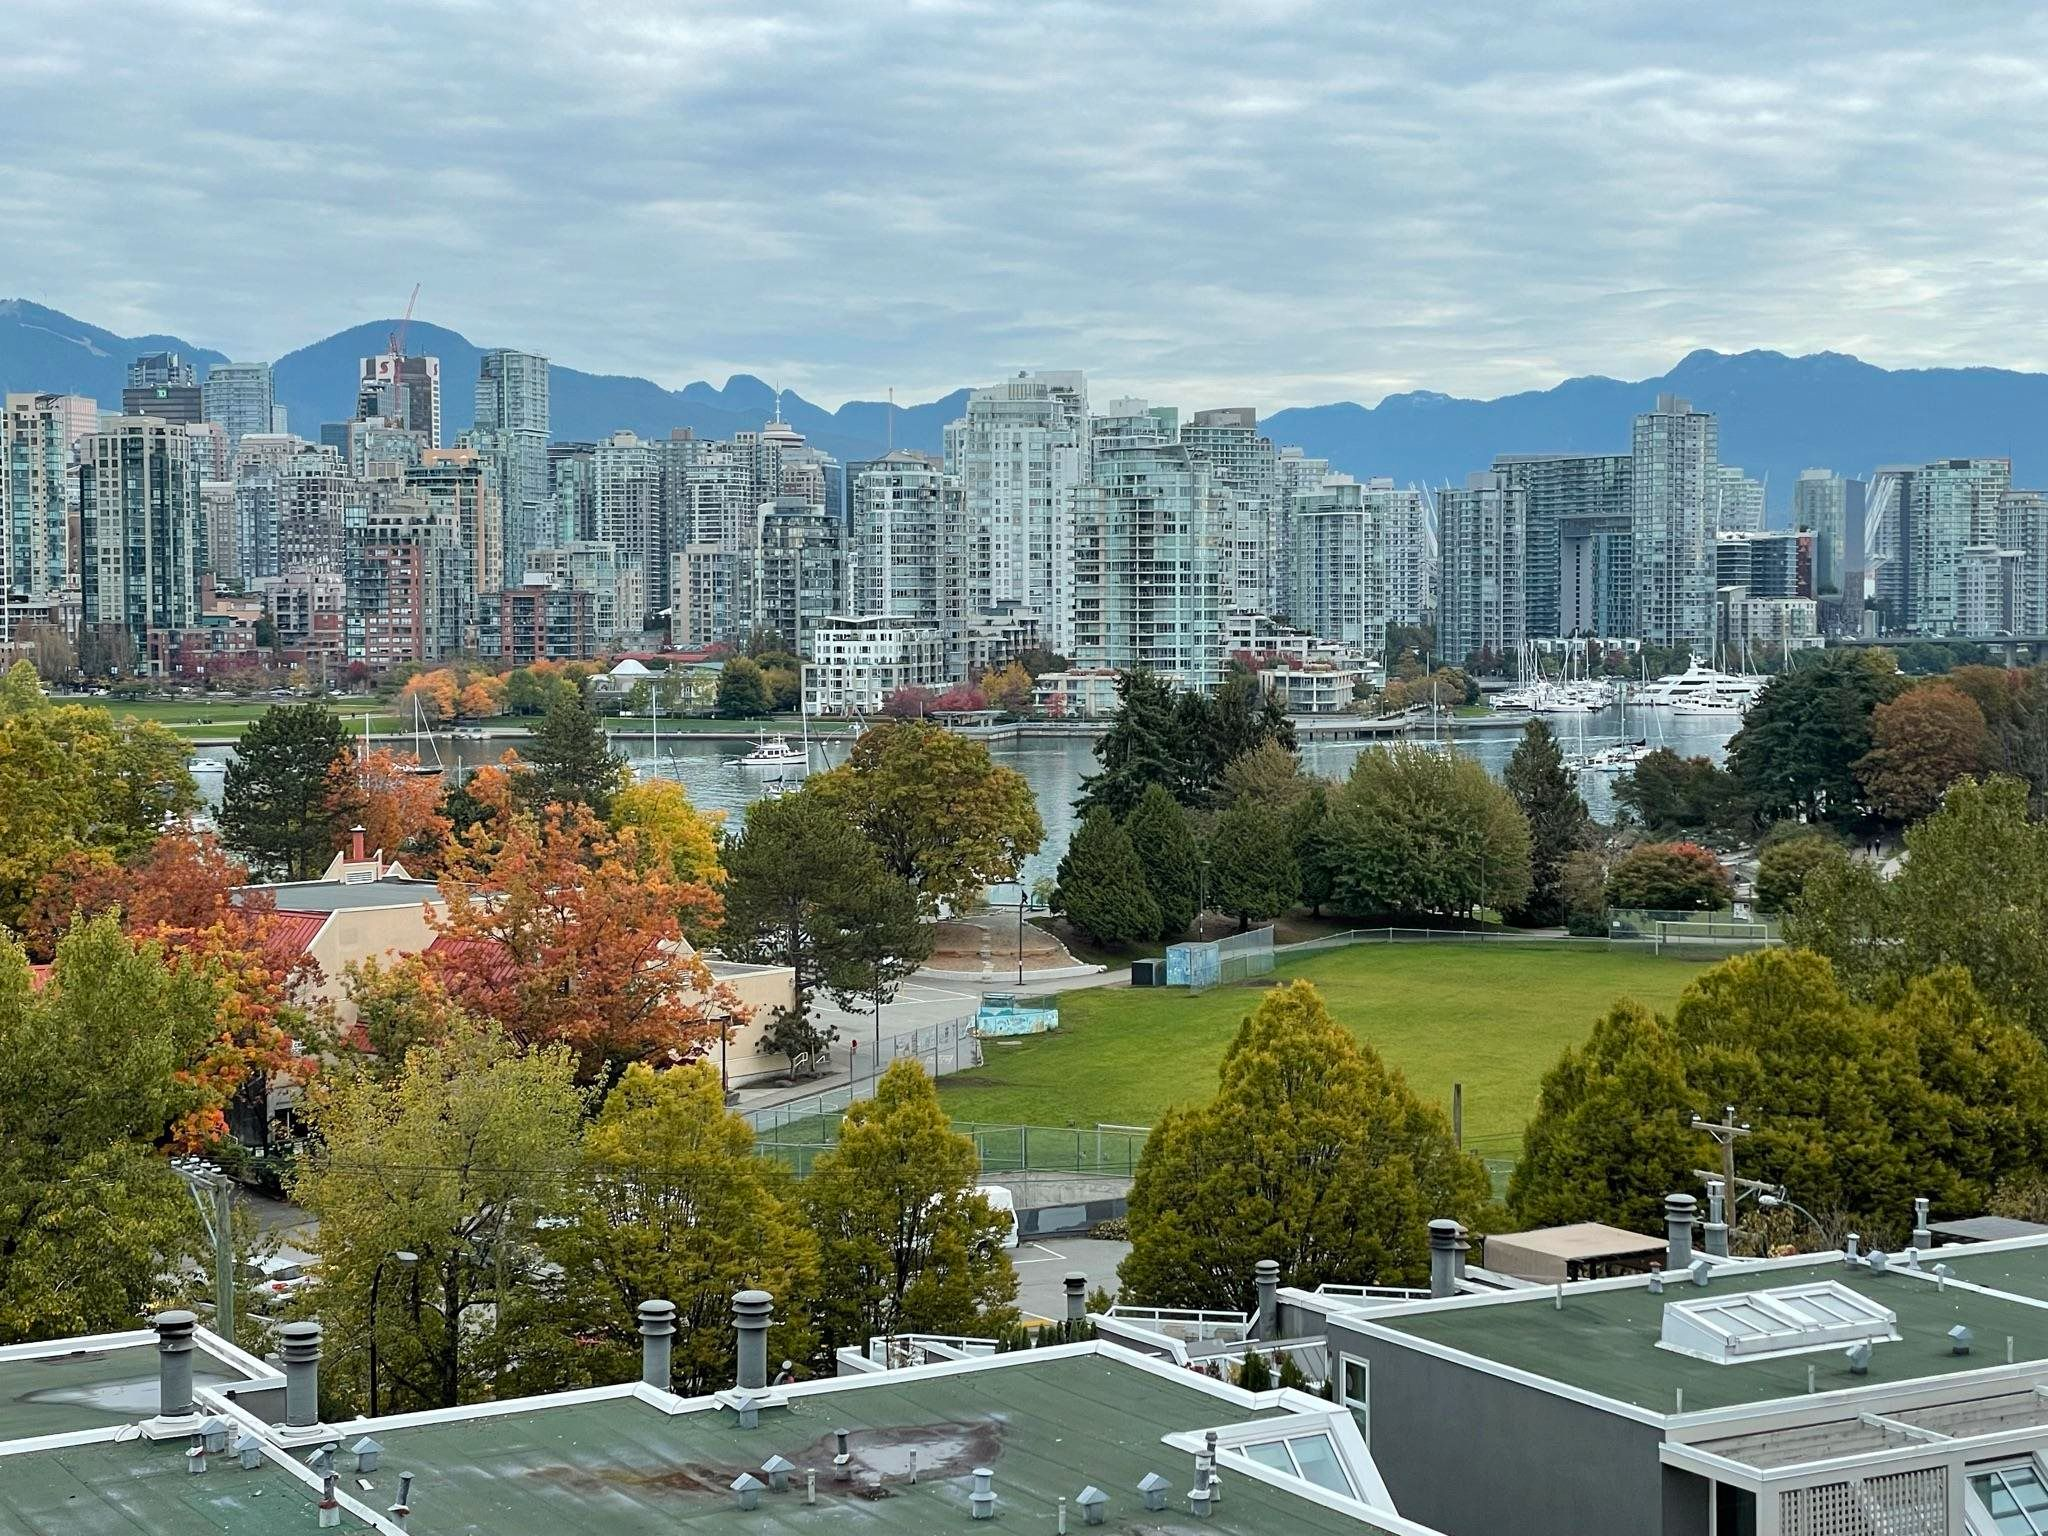 Main Photo: 1049 W 7TH Avenue in Vancouver: Fairview VW Townhouse for sale (Vancouver West)  : MLS®# R2625824